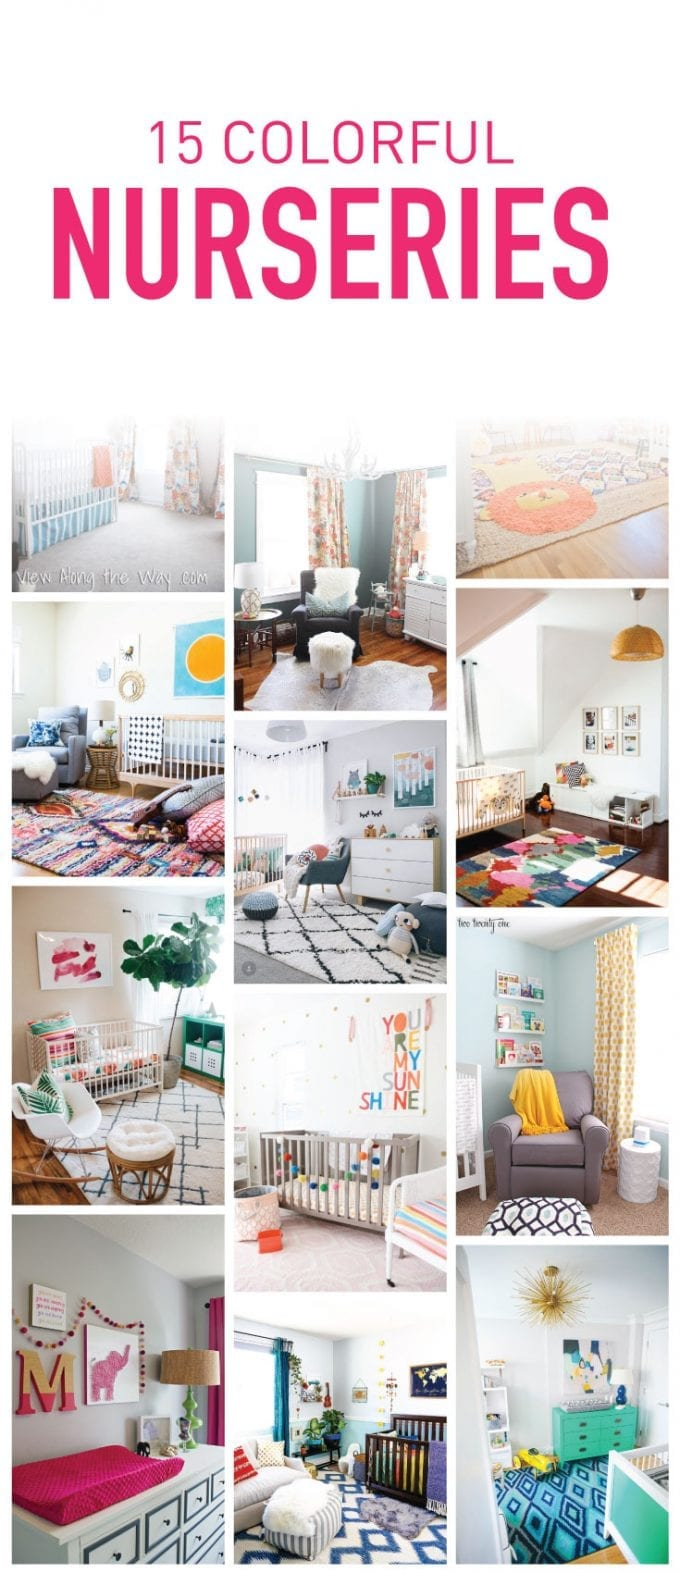 15 Colorful baby nursery ideas image.